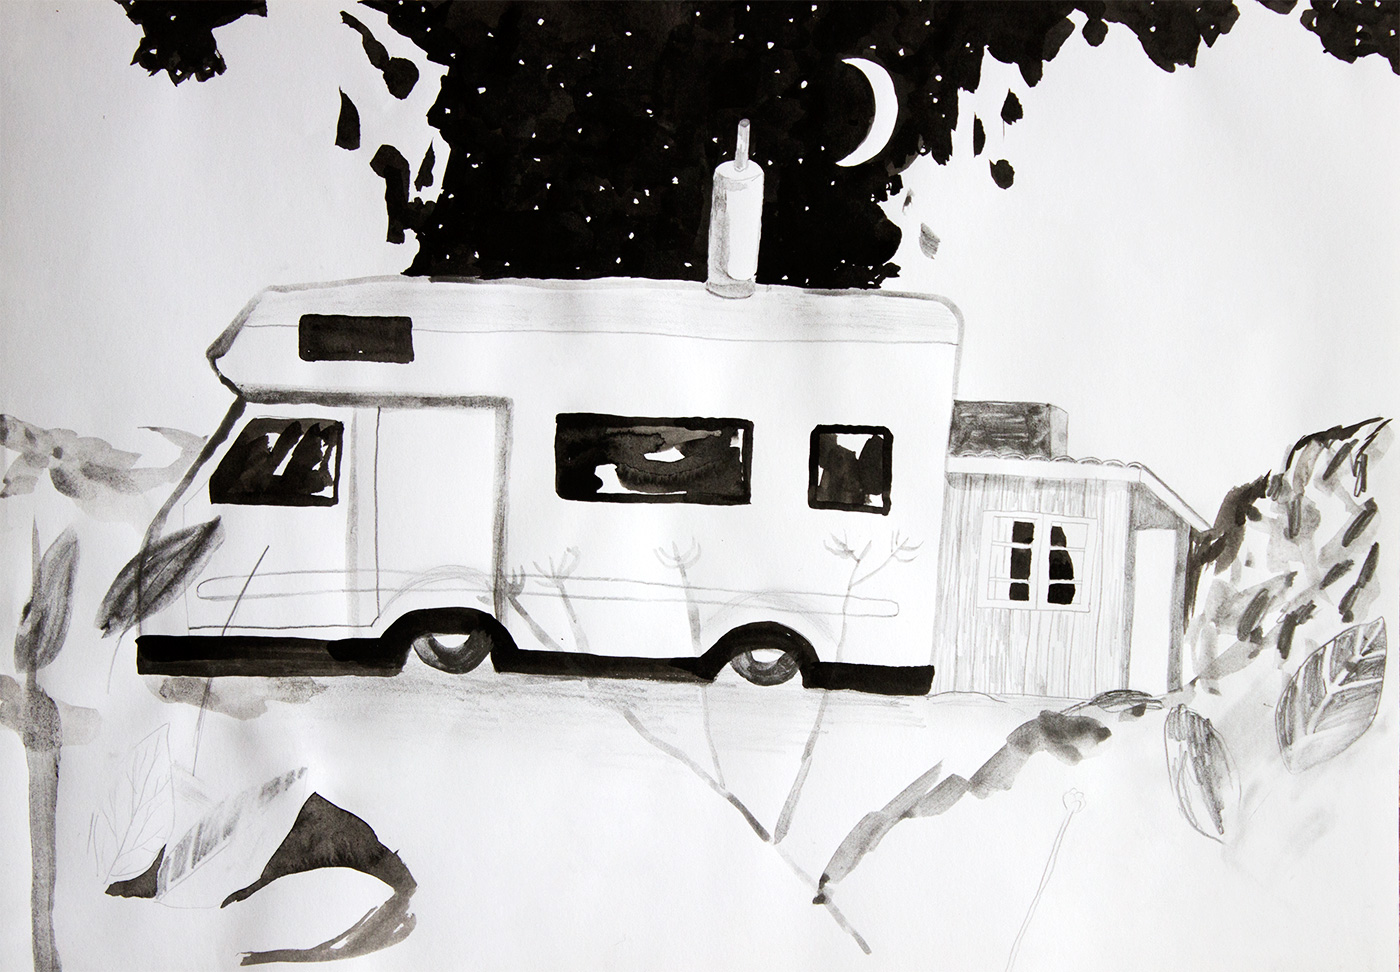 drawings, watercolors, aesthetic, figurative, landscape, monochrome, botany, nature, sky, black, white, artliner, ink, paper, watercolor, black-and-white, cars, decorative, interior, interior-design, scenery, trees, Buy original high quality art. Paintings, drawings, limited edition prints & posters by talented artists.